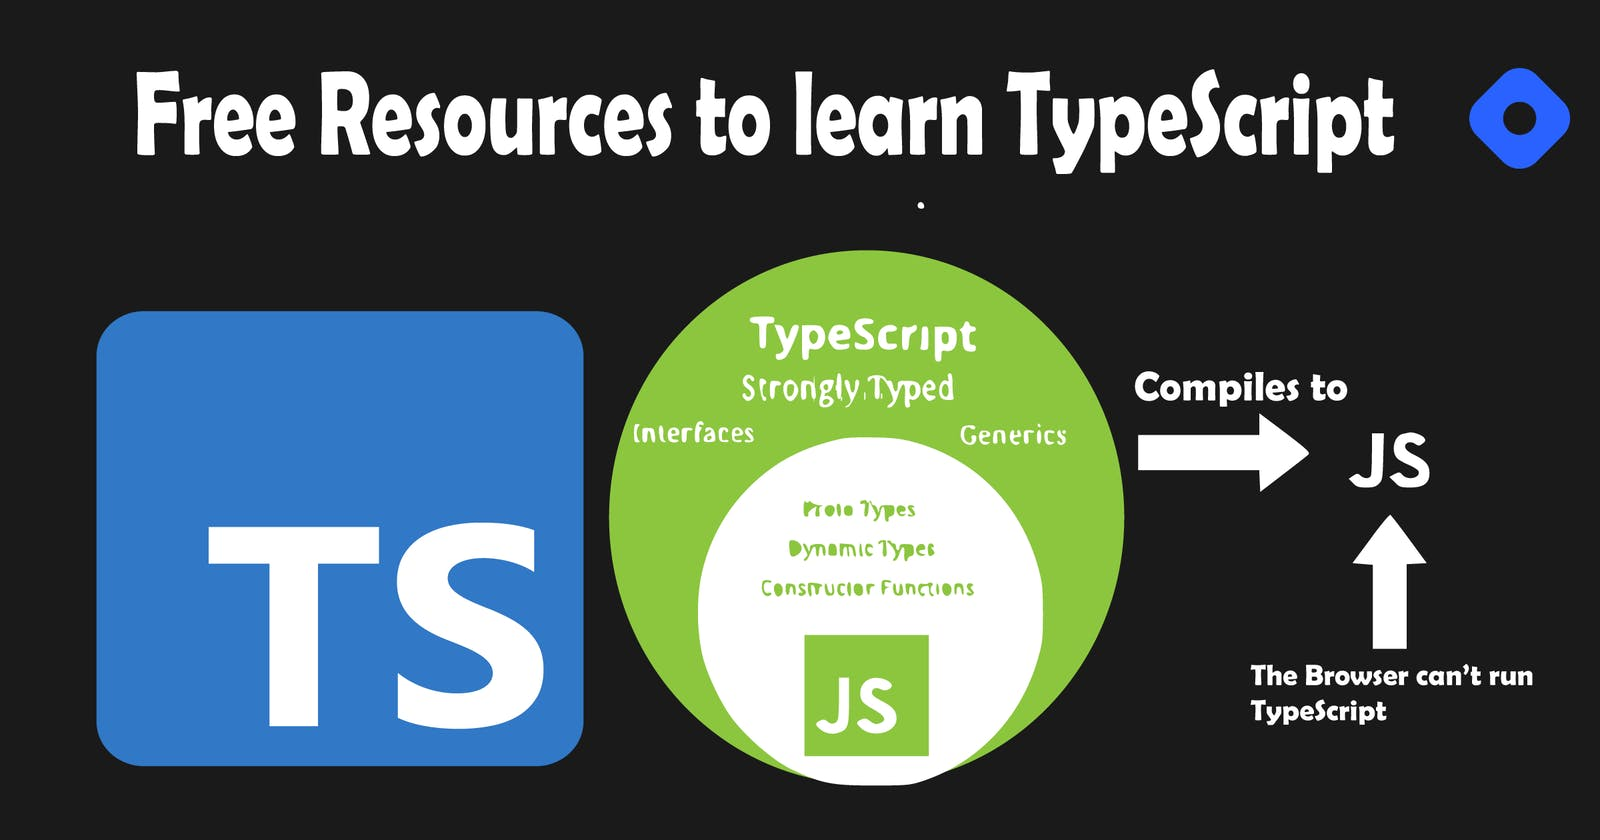 Resources to Learn TypeScript!